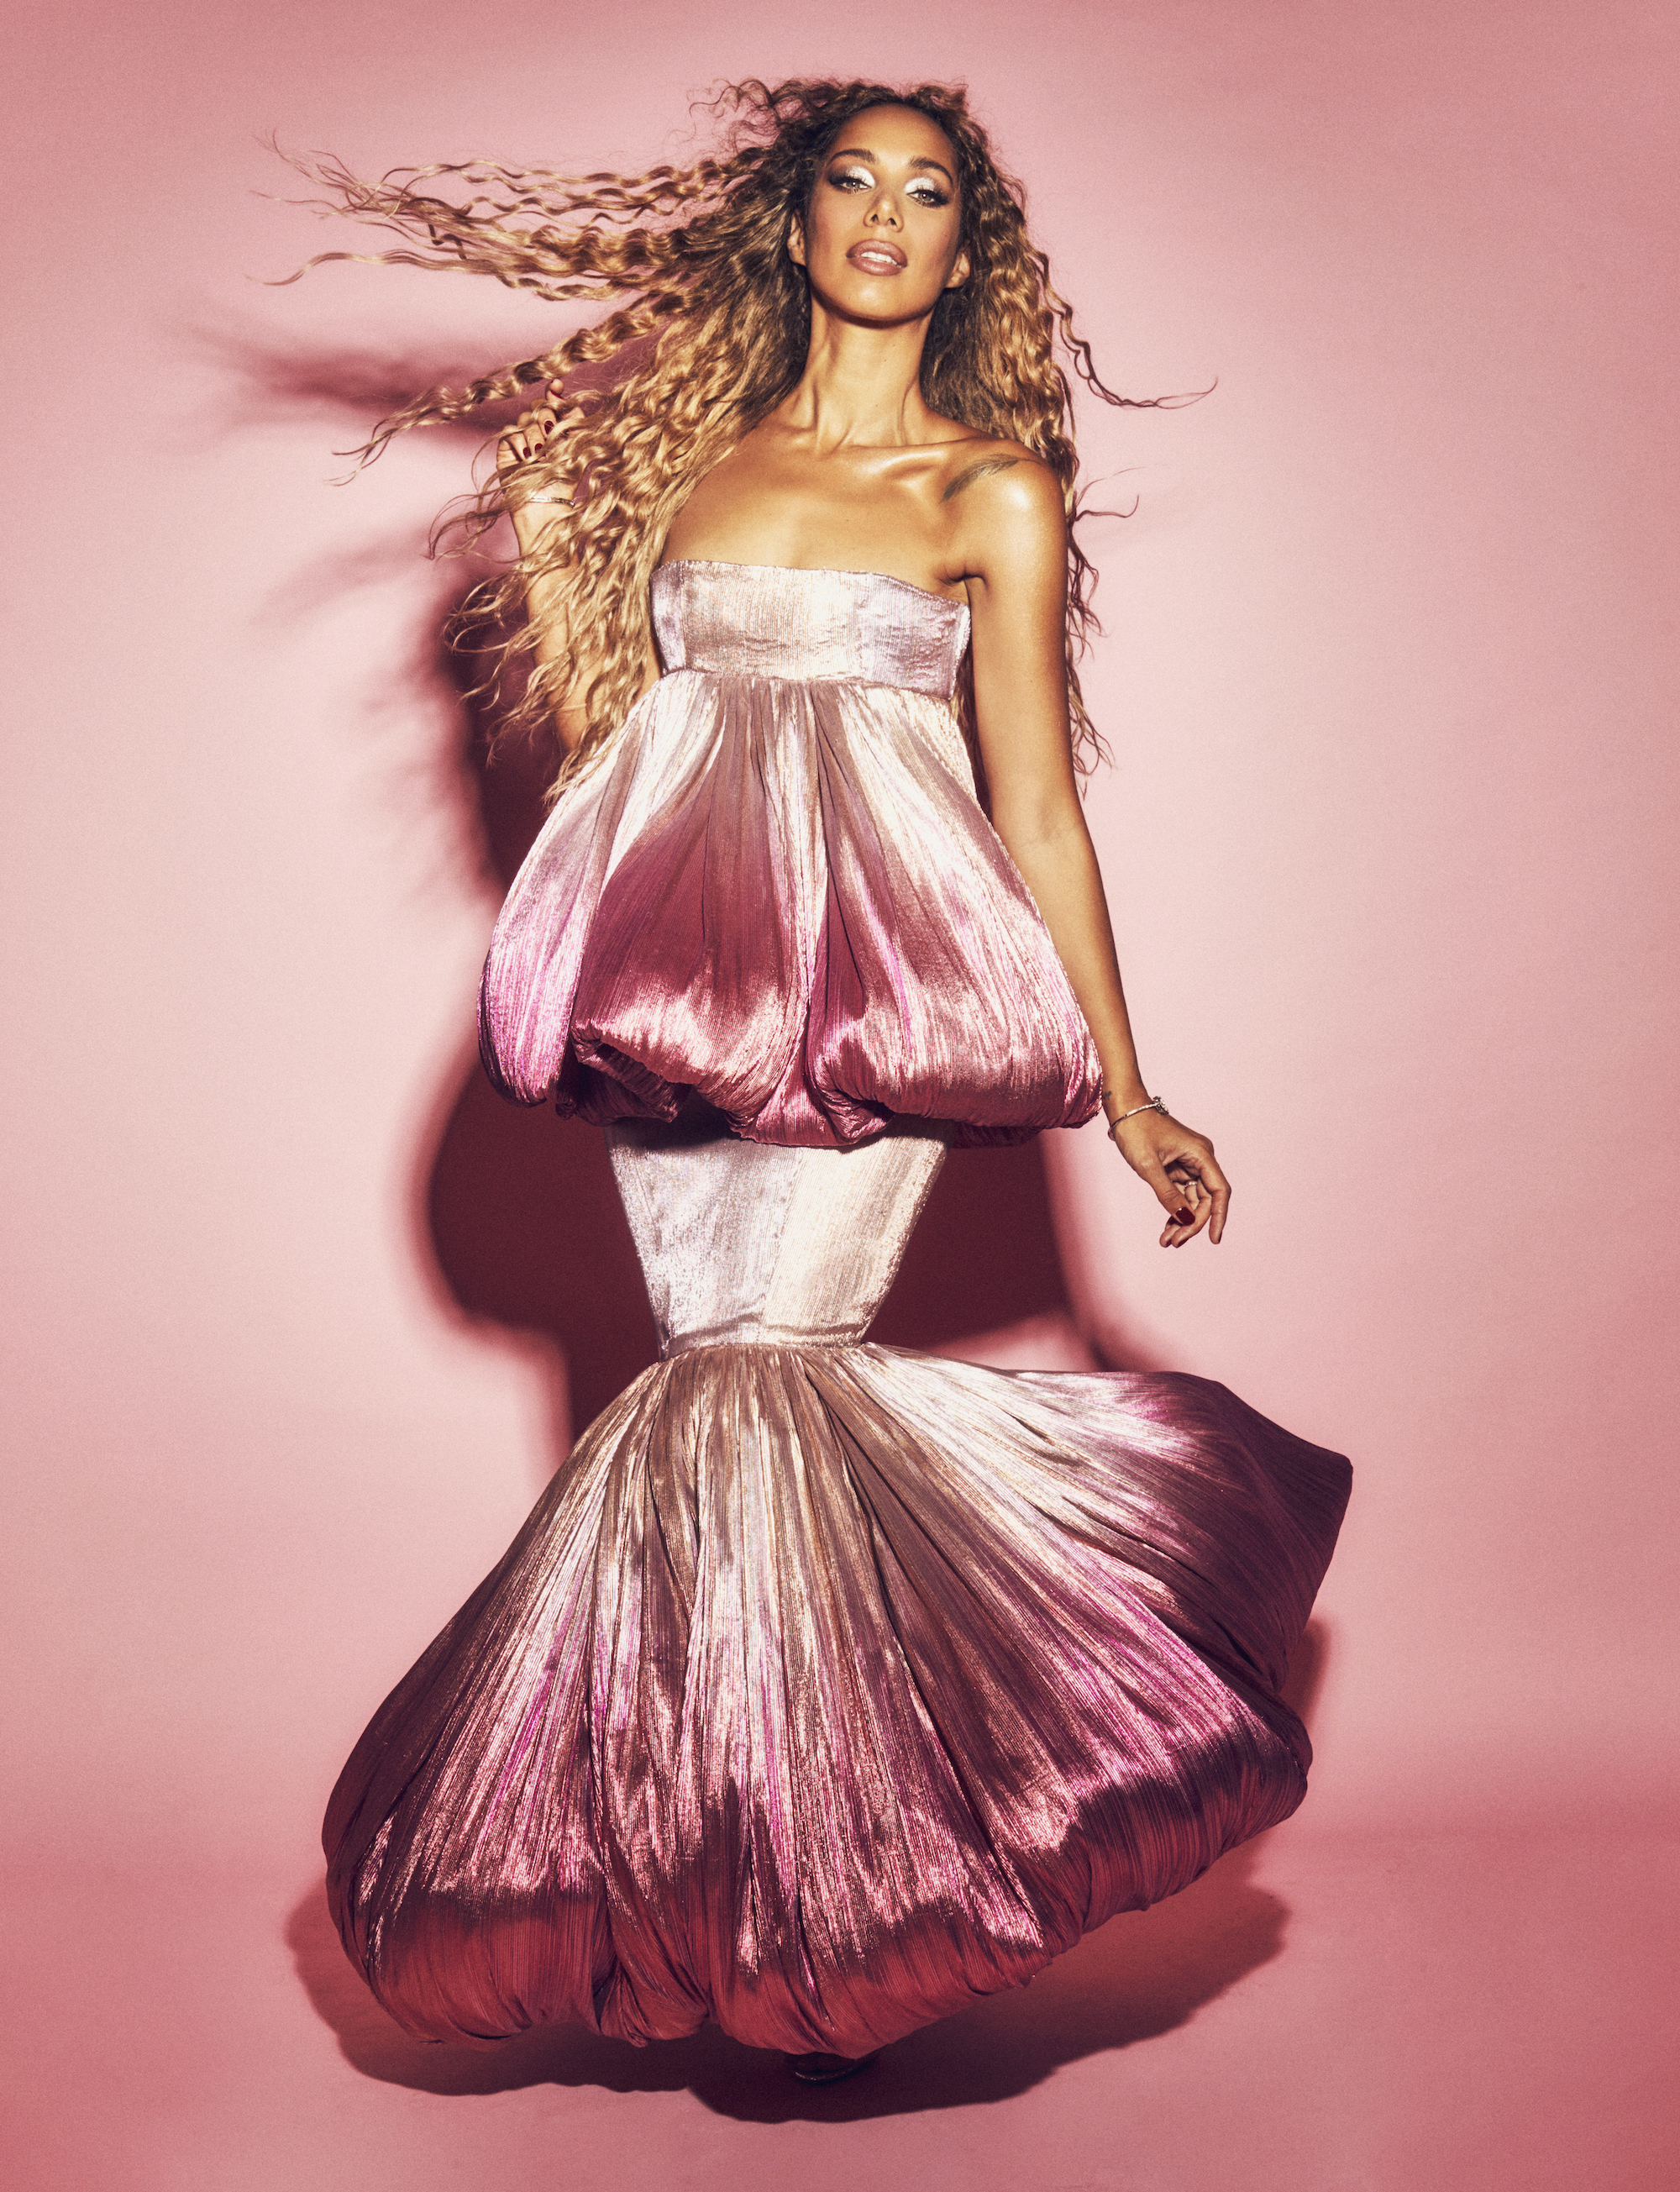 Leona Lewis wearing Pink dress